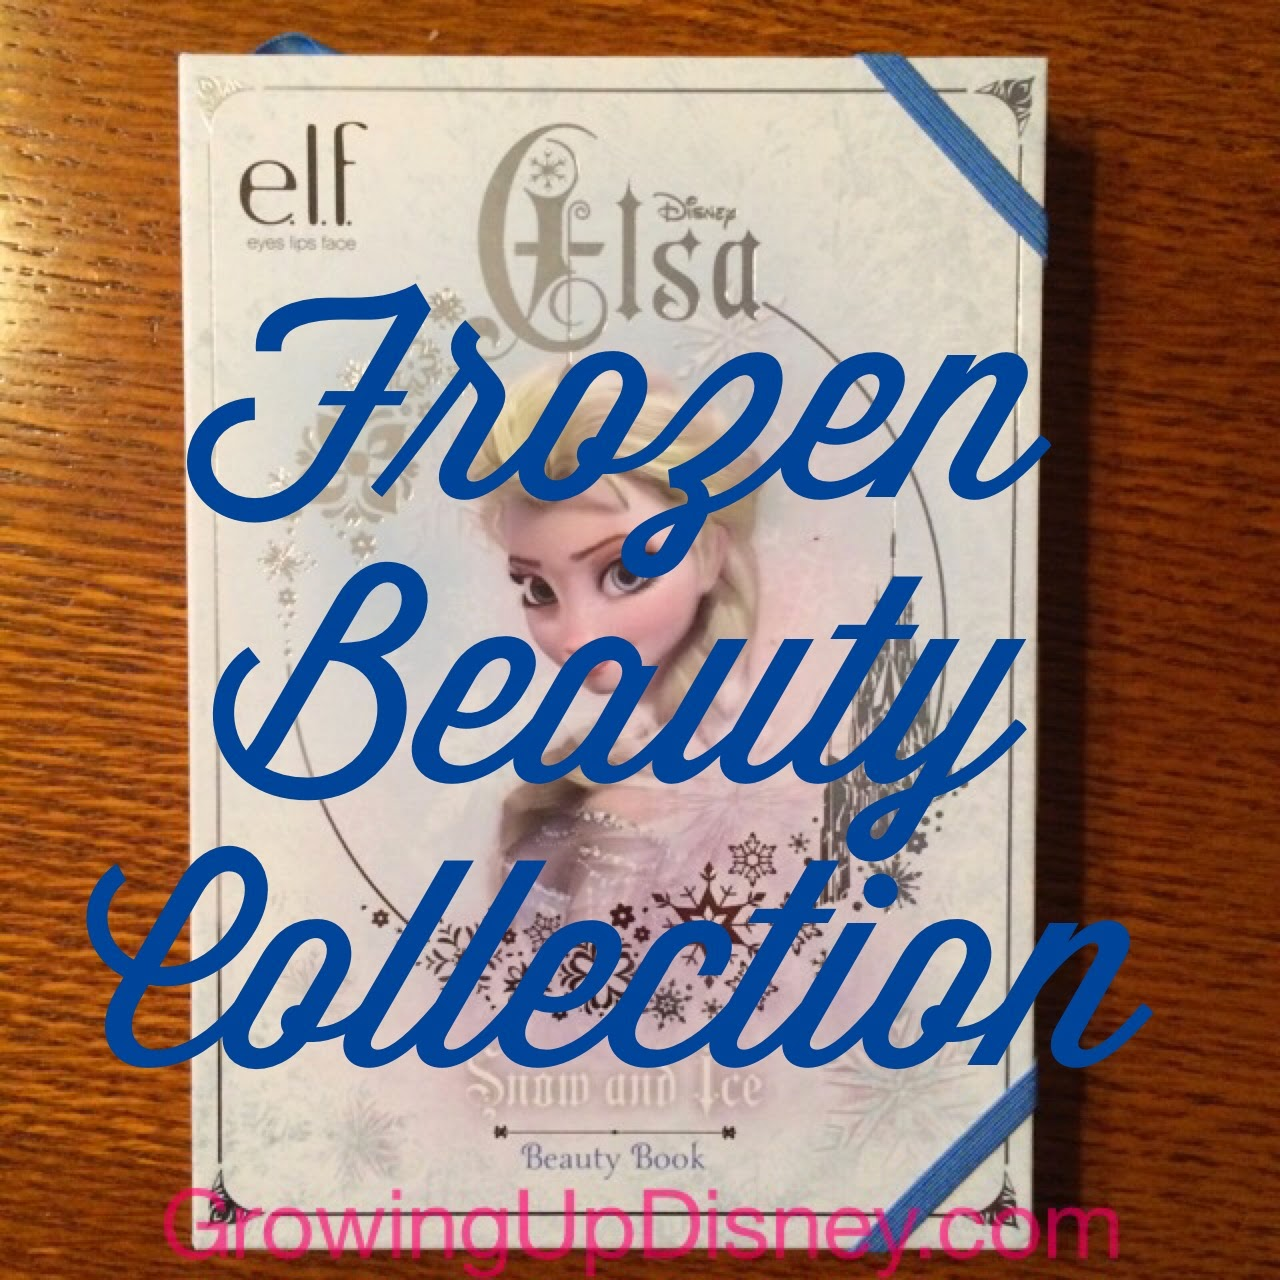 Elsa makeup collection from Elf available at Walgreens, Growing Up Disney